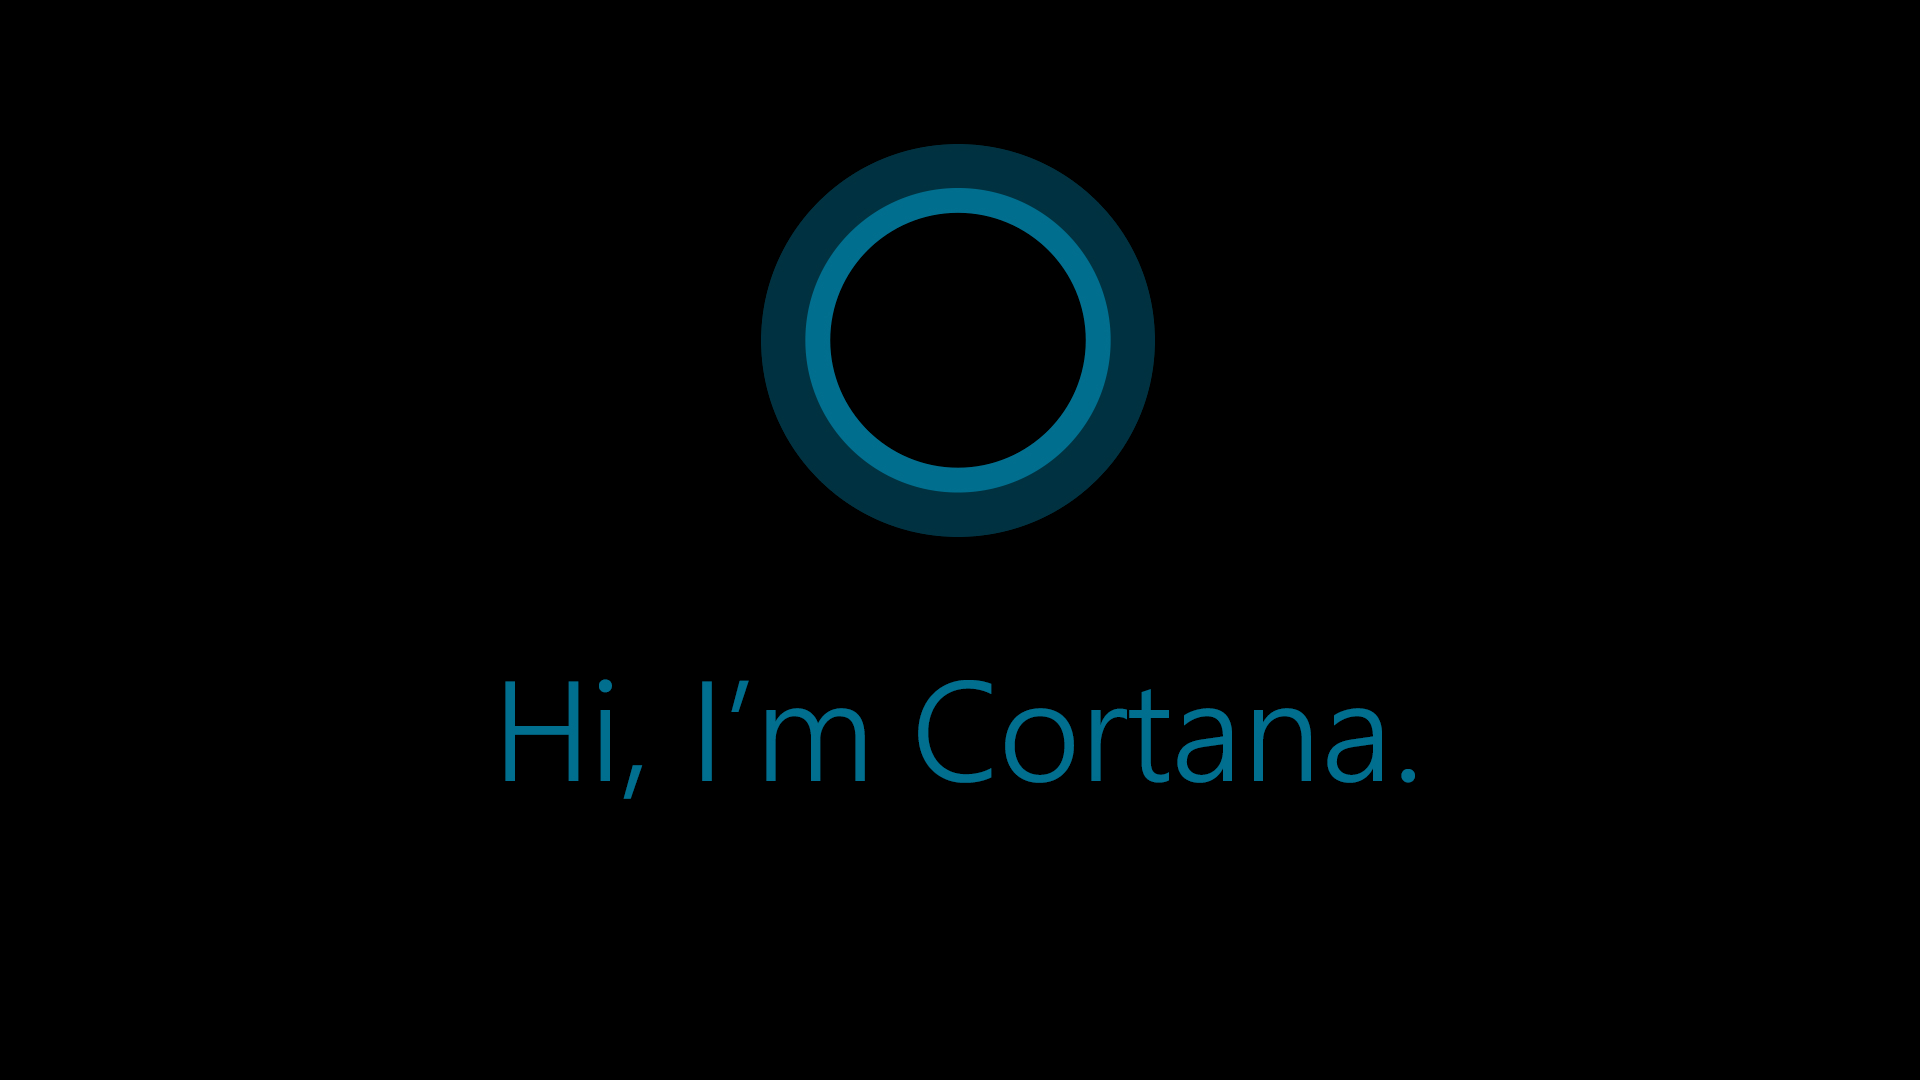 Windows Phone 8 / Windows 8 : Intégrer Cortana dans une application